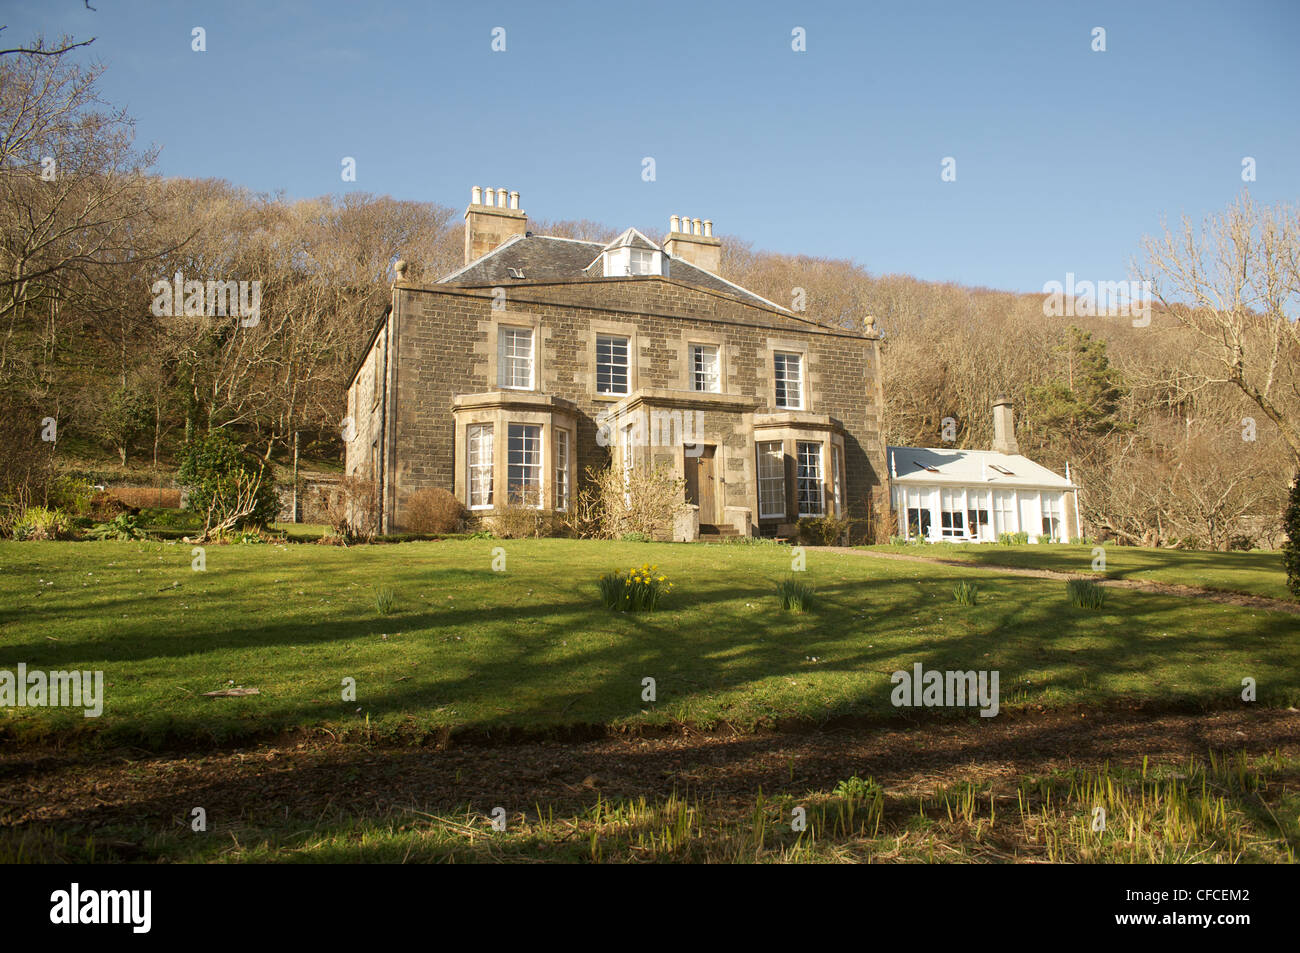 Canna House on the island of Canna in the Inner Hebrides off the west coast of Scotland. - Stock Image